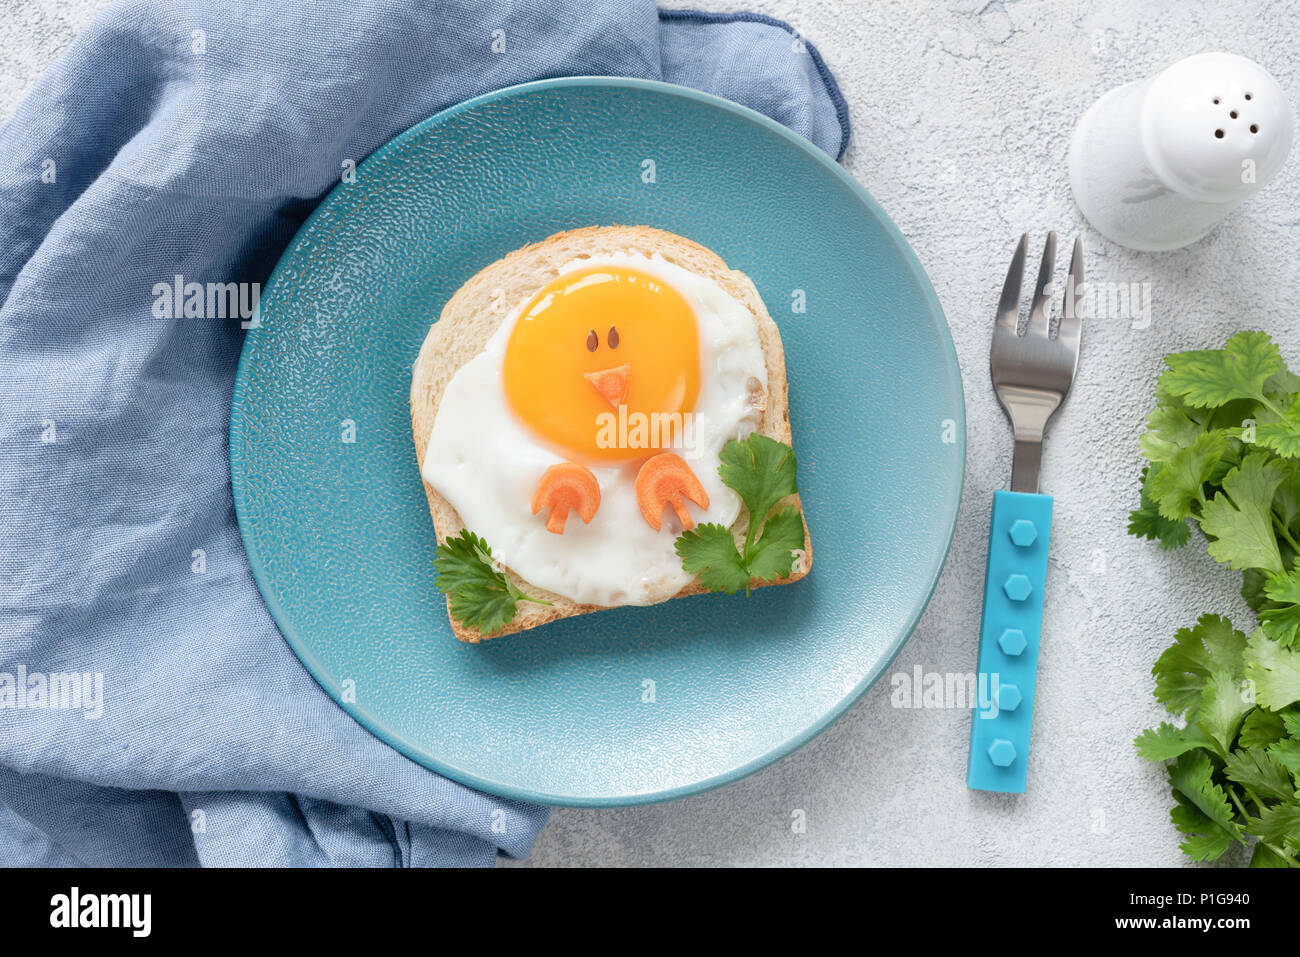 Chicken Shaped Stock Photos & Chicken Shaped Stock Images - Alamy